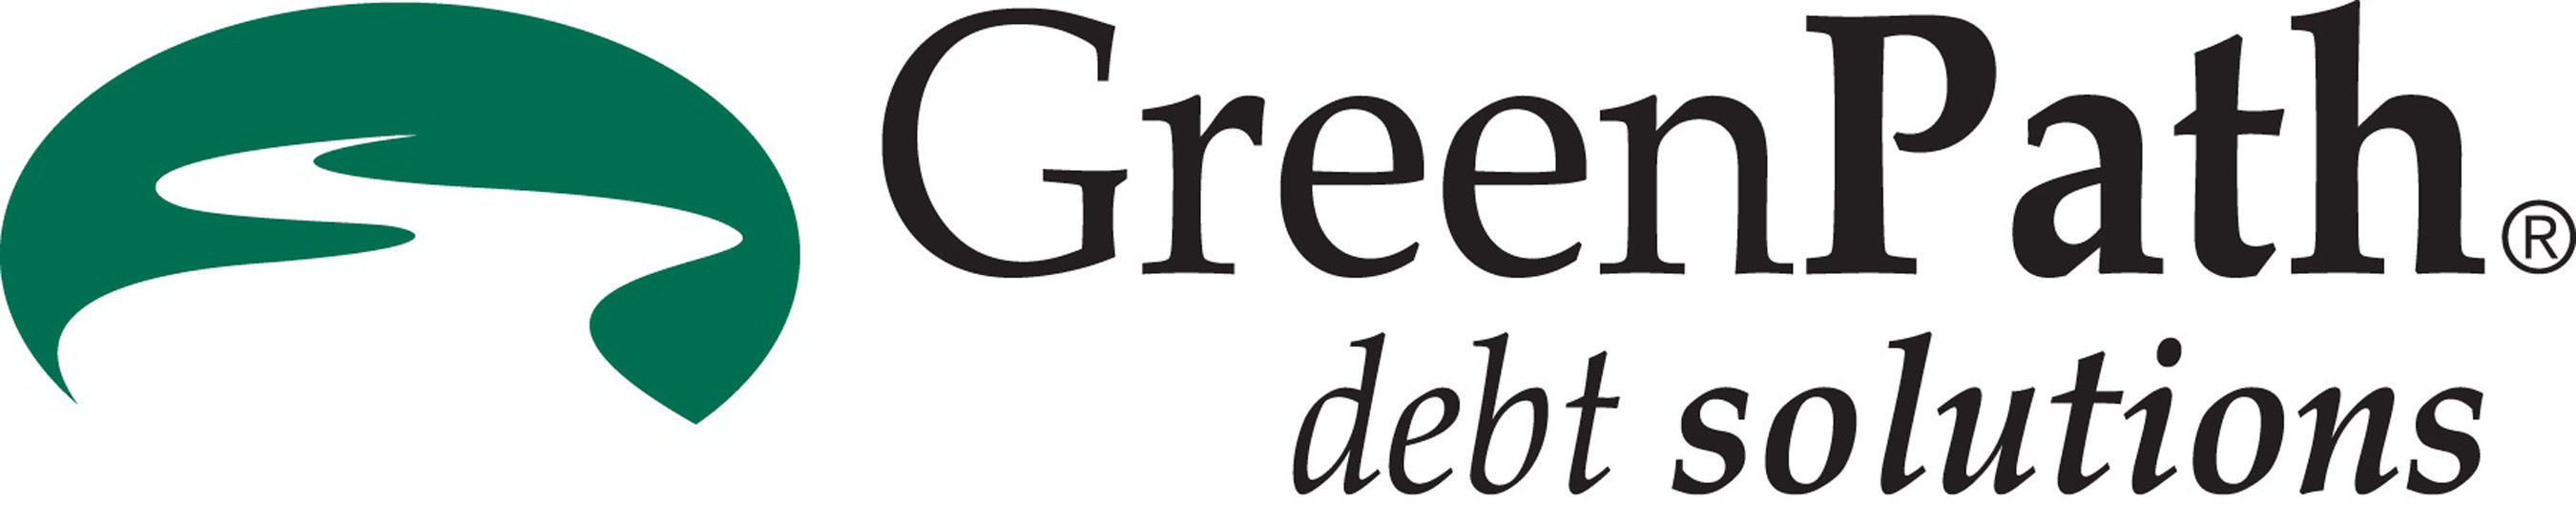 GreenPath Debt Solutions is a nationwide, non-profit financial organization that assists consumers with credit ...